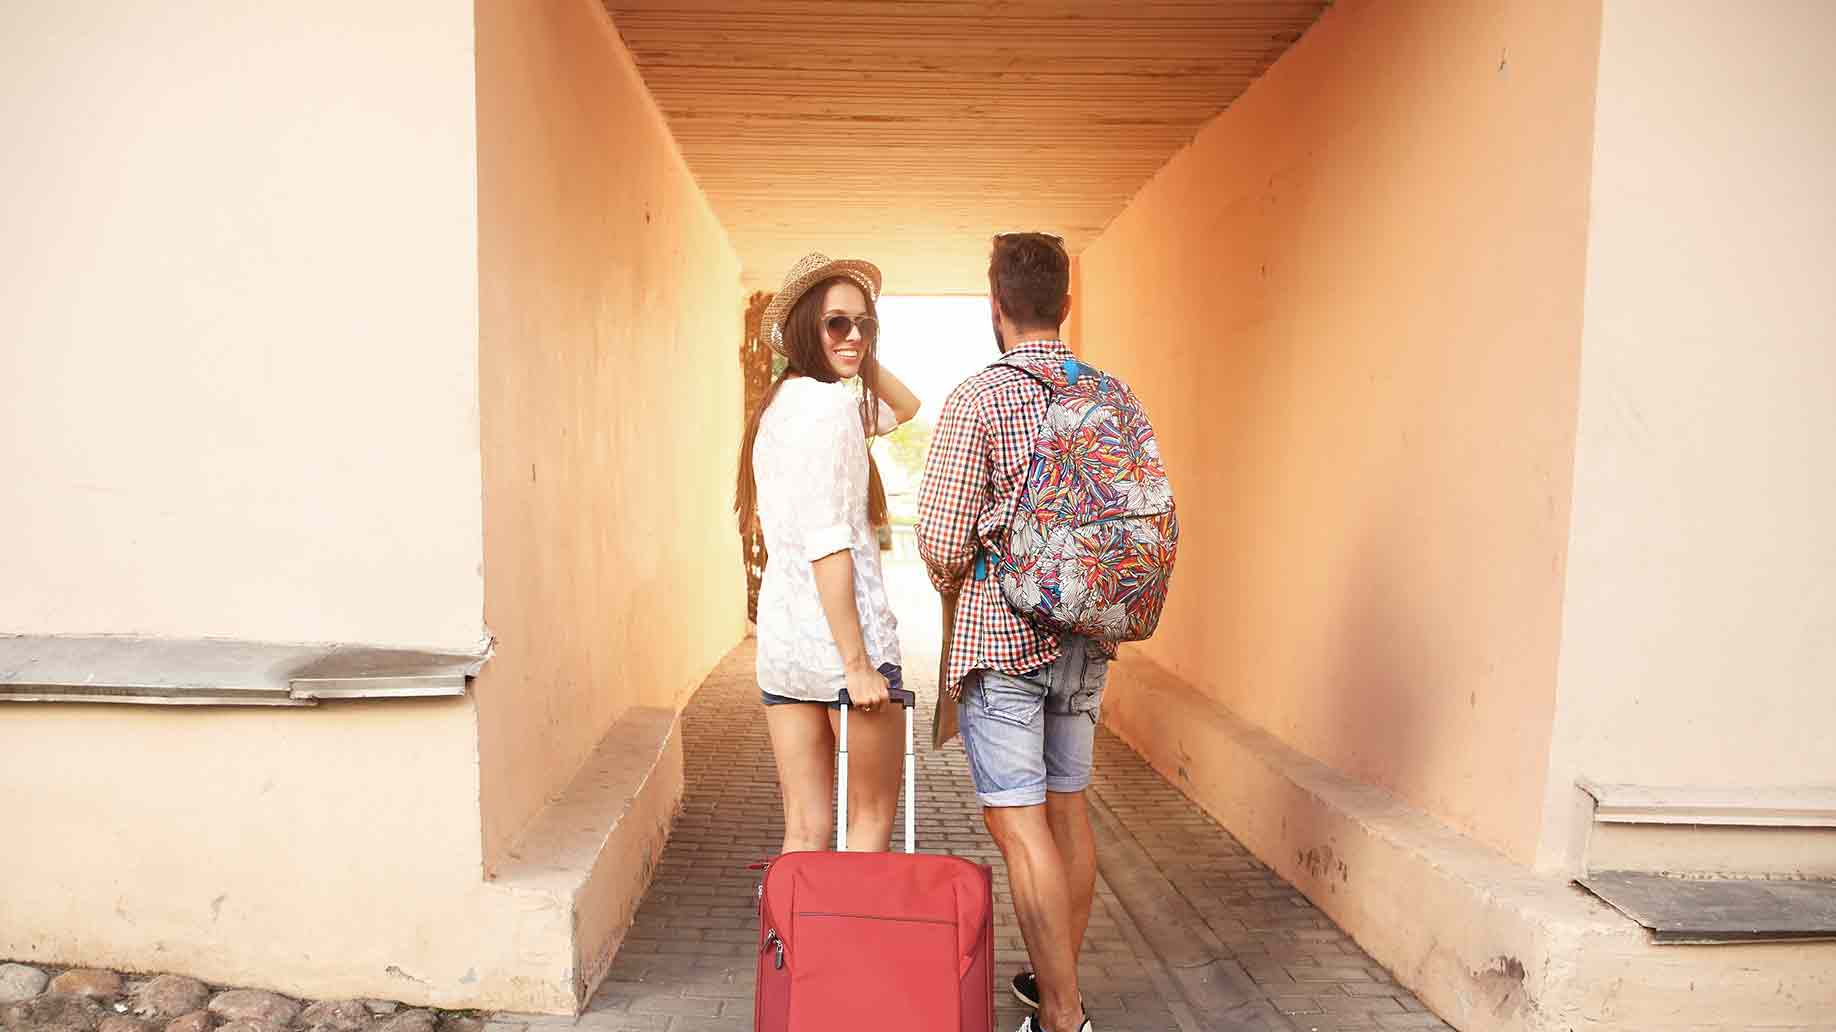 two travelers on vacation walking around